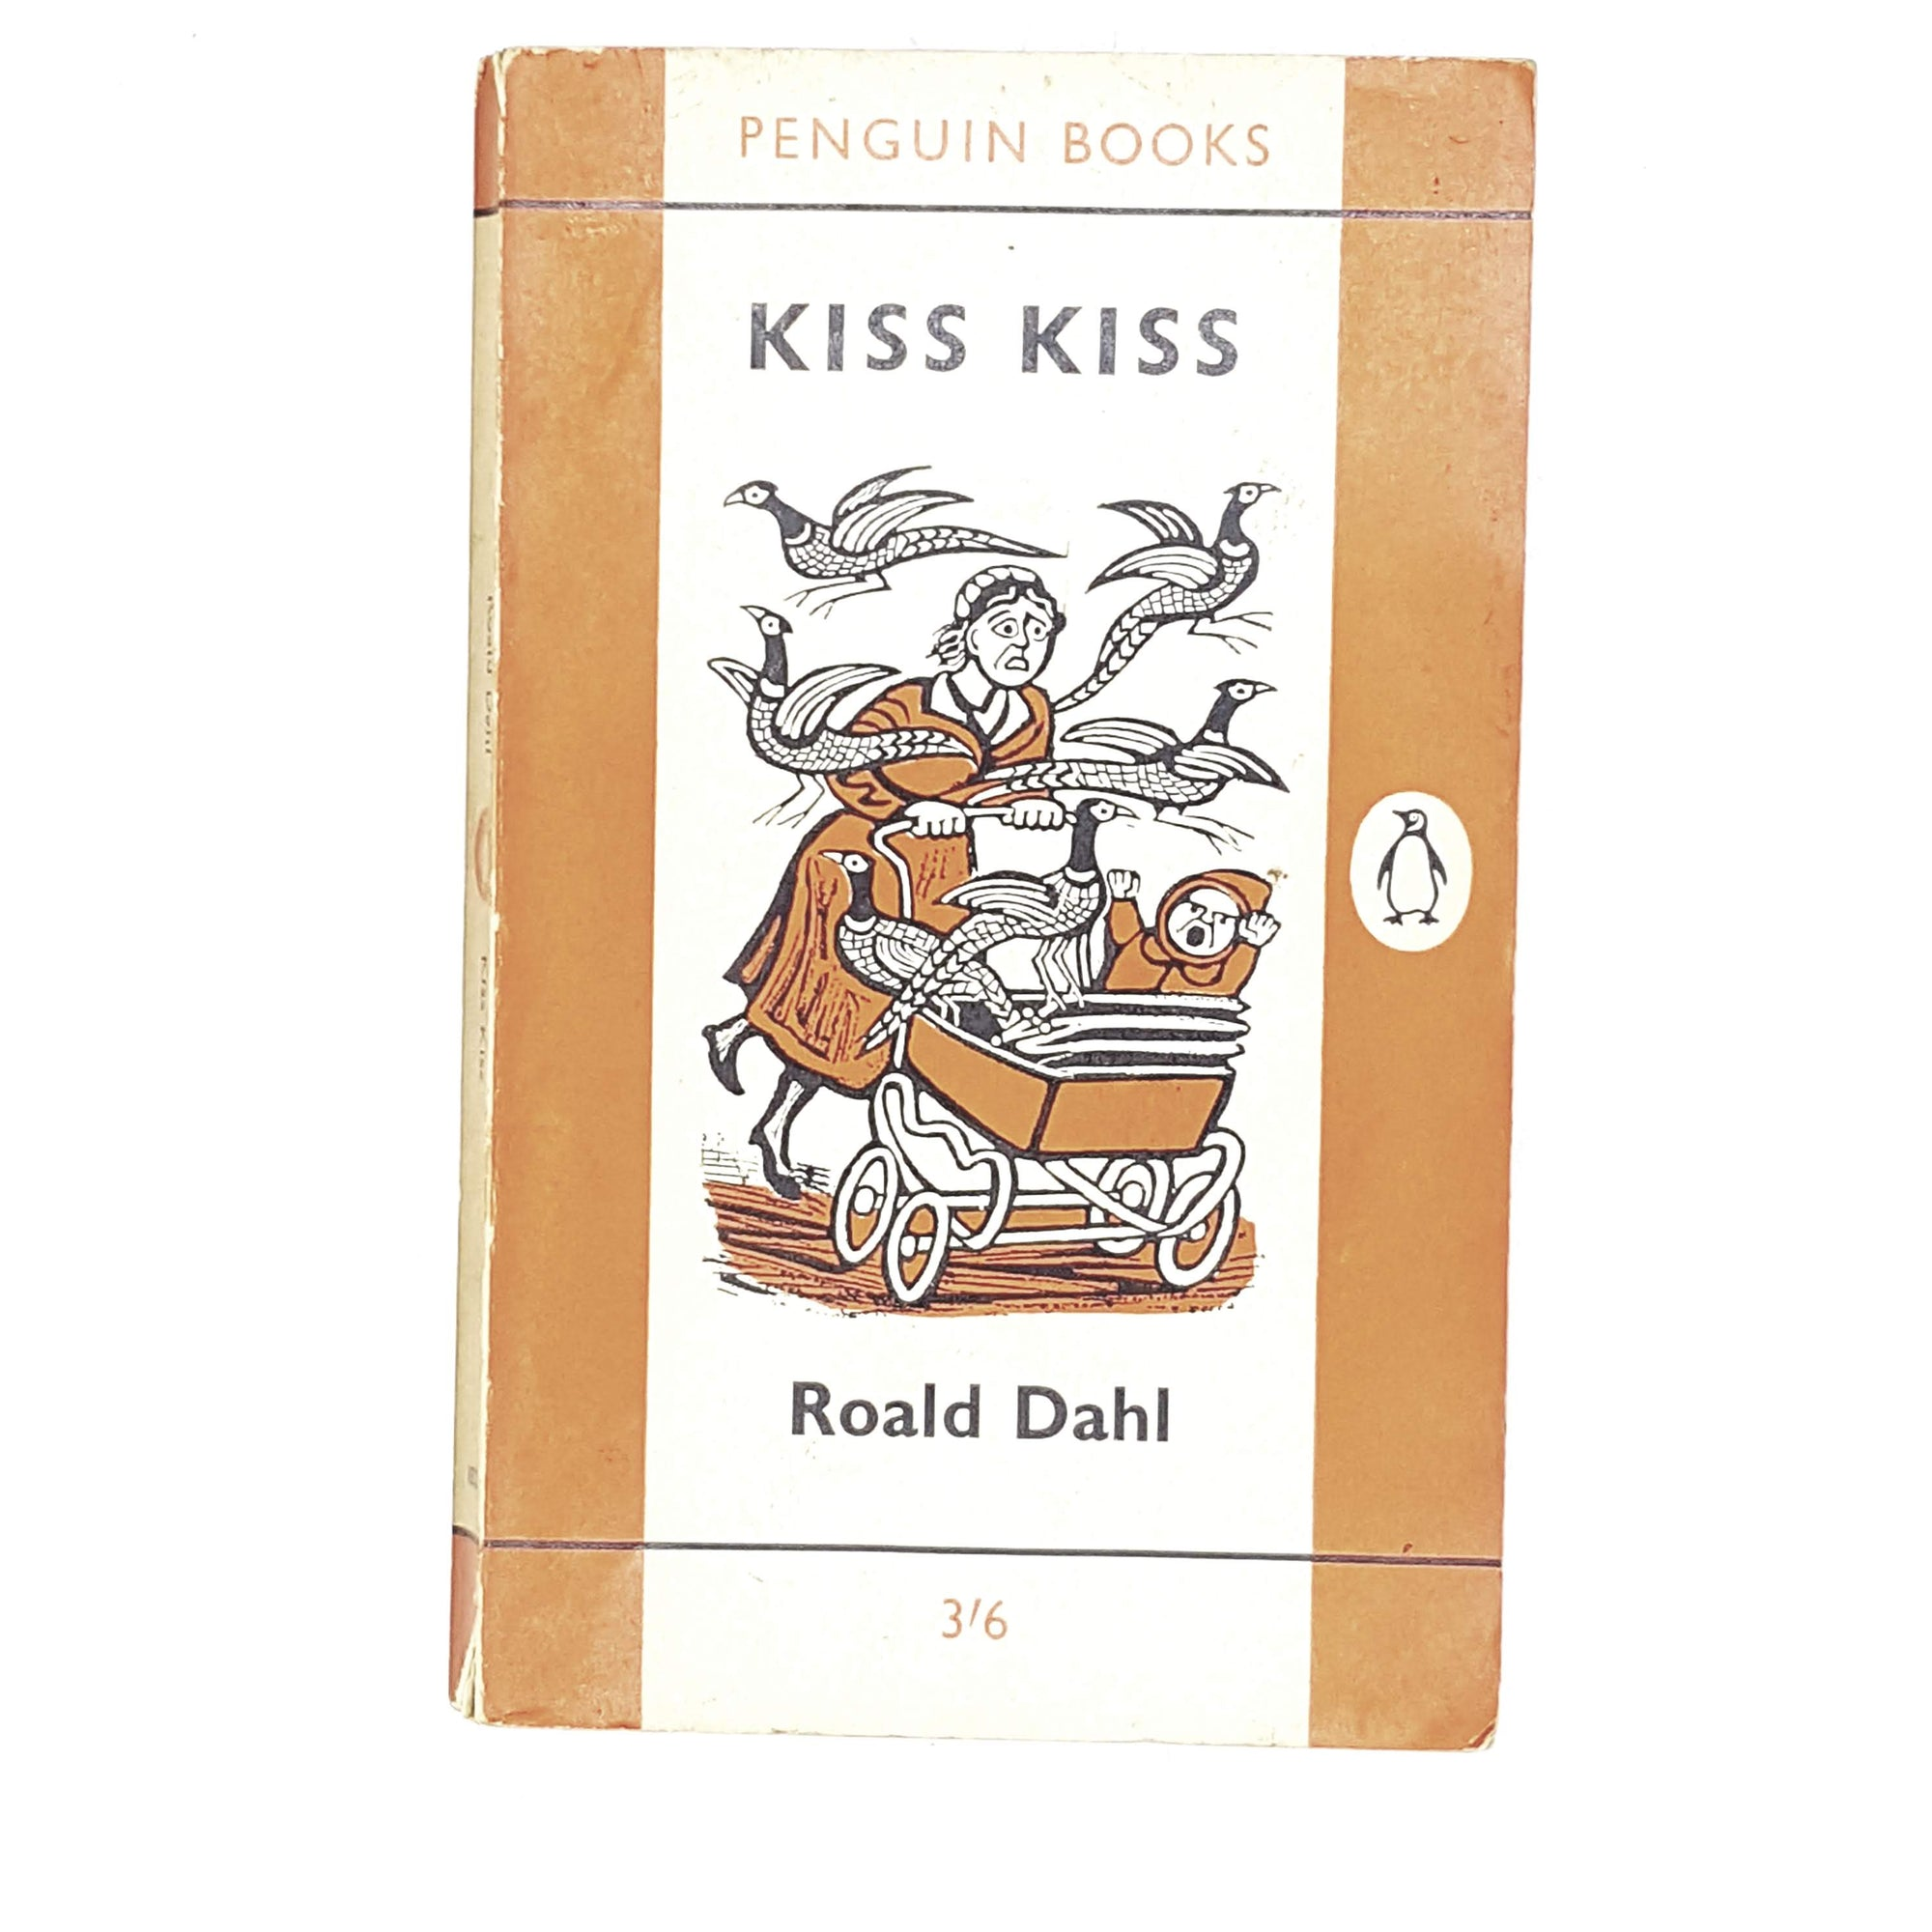 vintage-penguin-roald-dahls-kiss-kiss-1959-orange-classic-literature-country-house-library